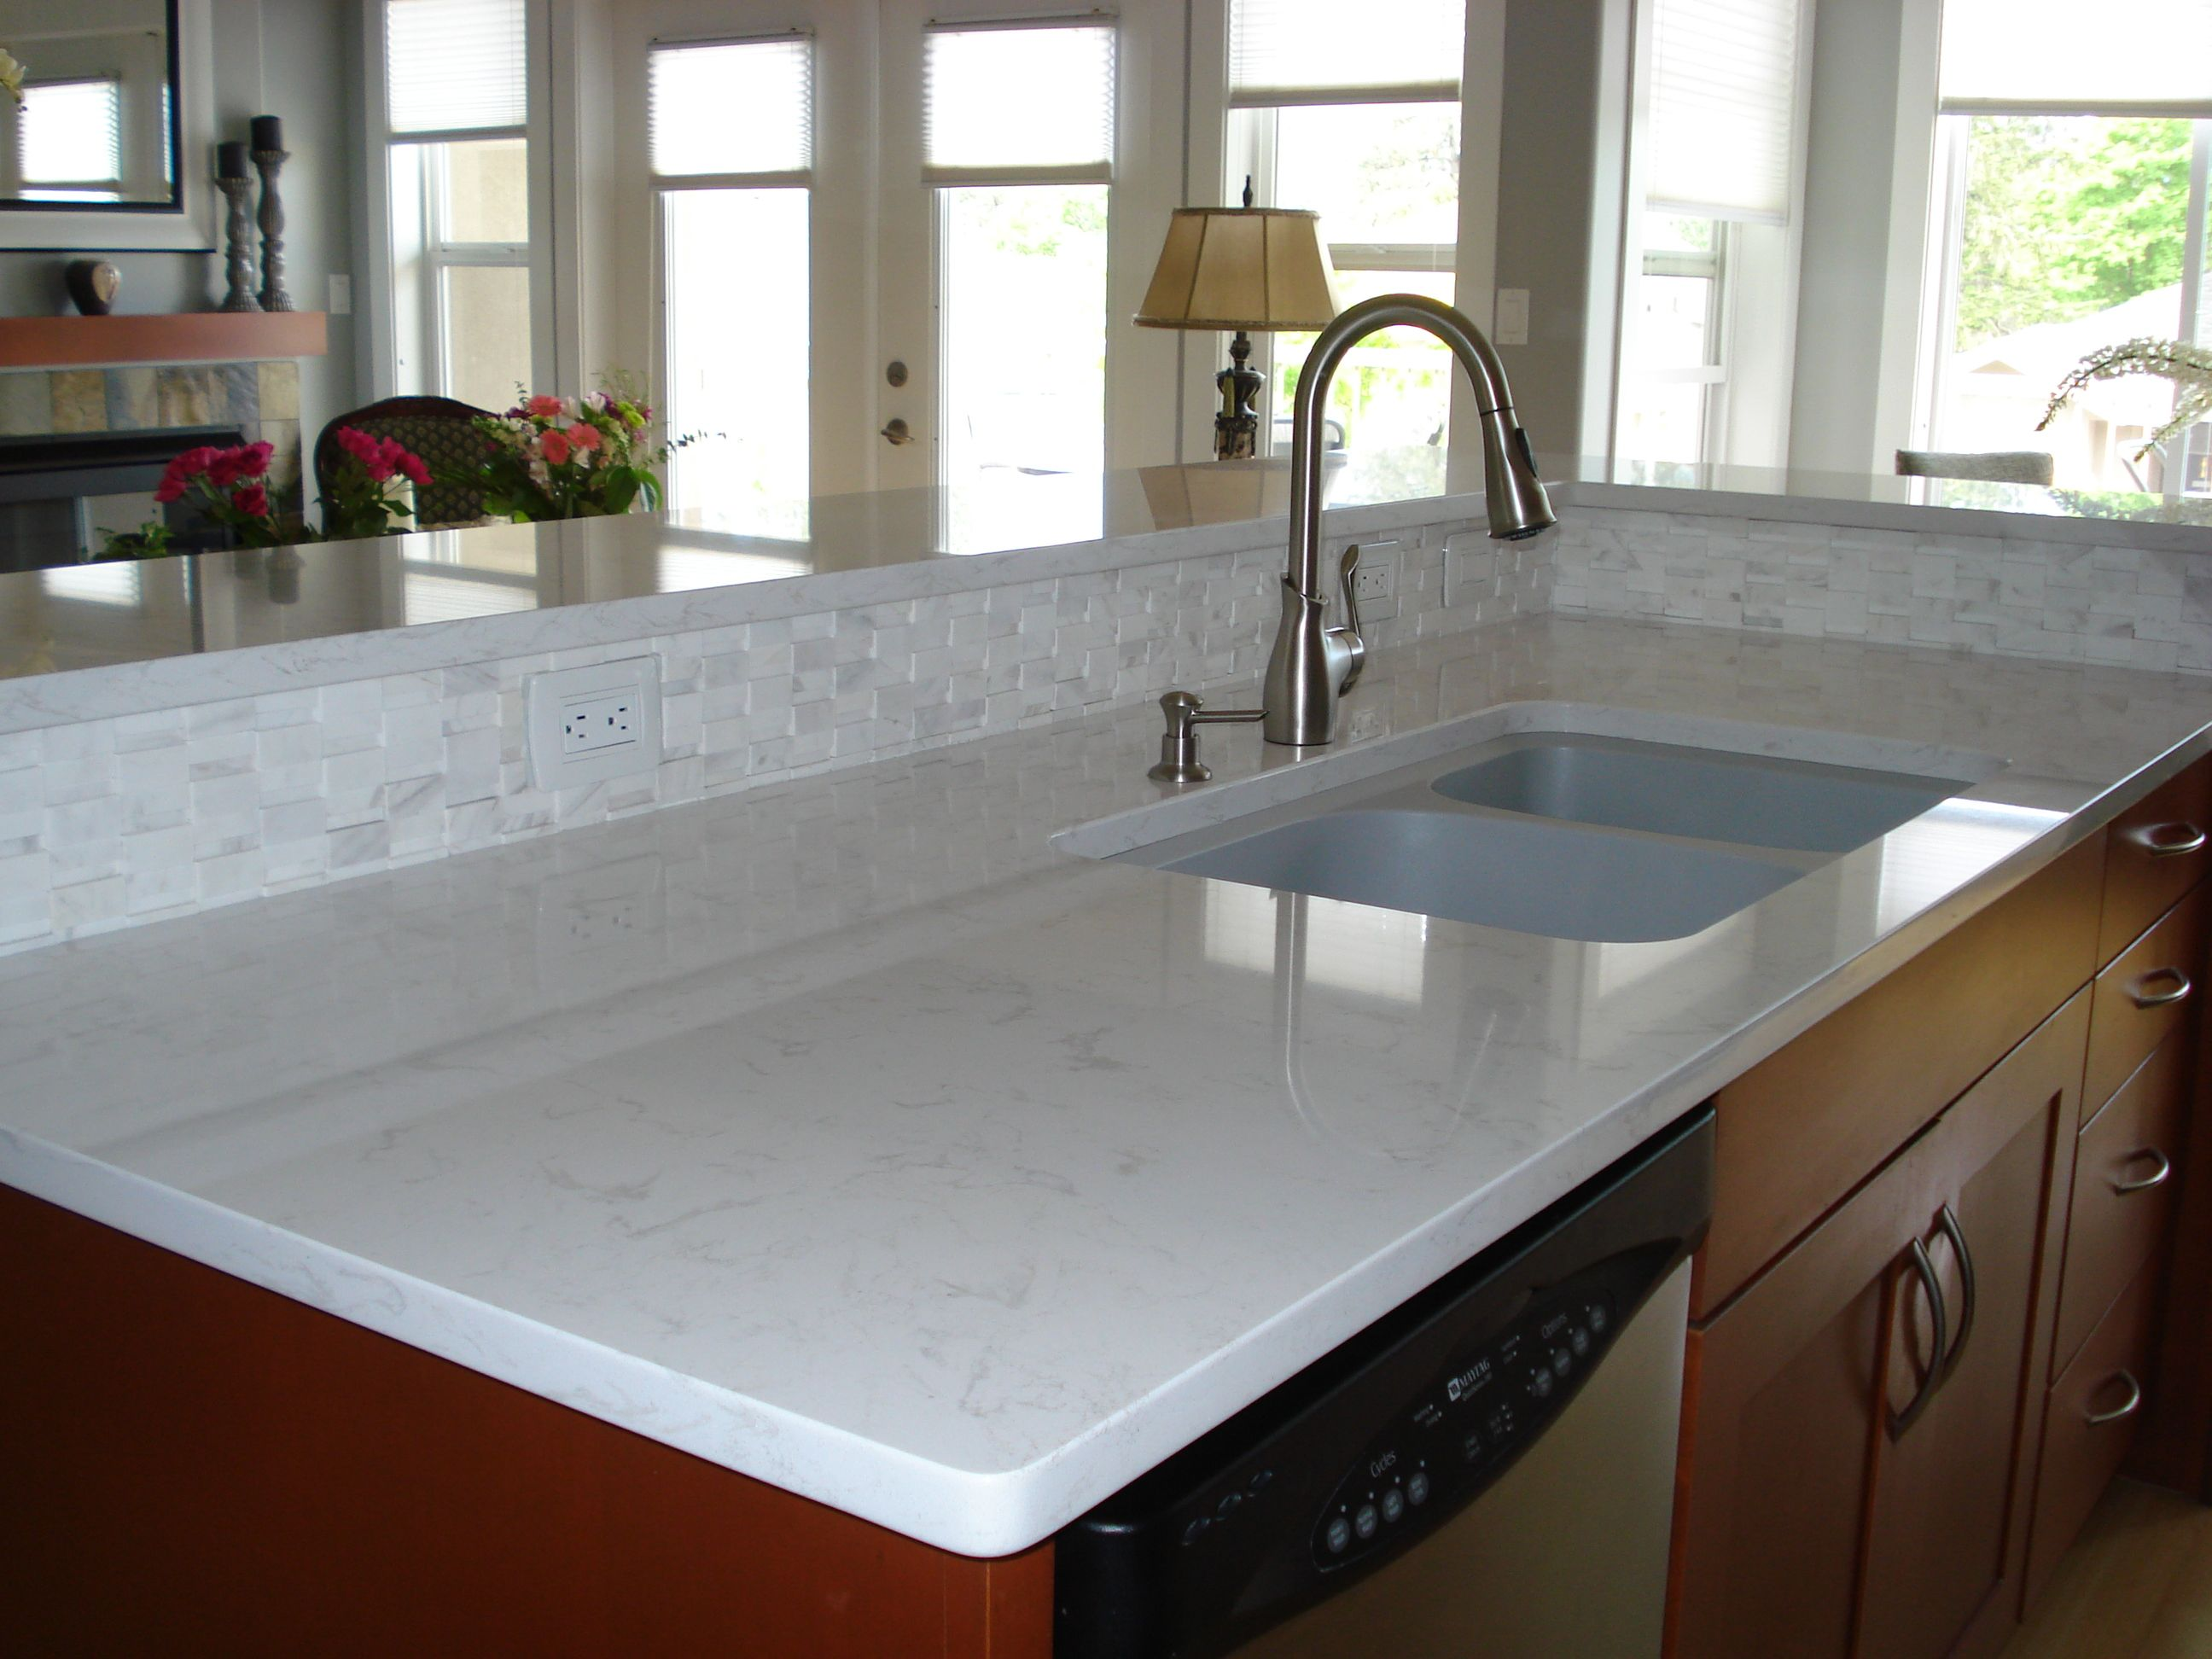 Light quartz counters backsplash home pinterest Backsplash ideas quartz countertops